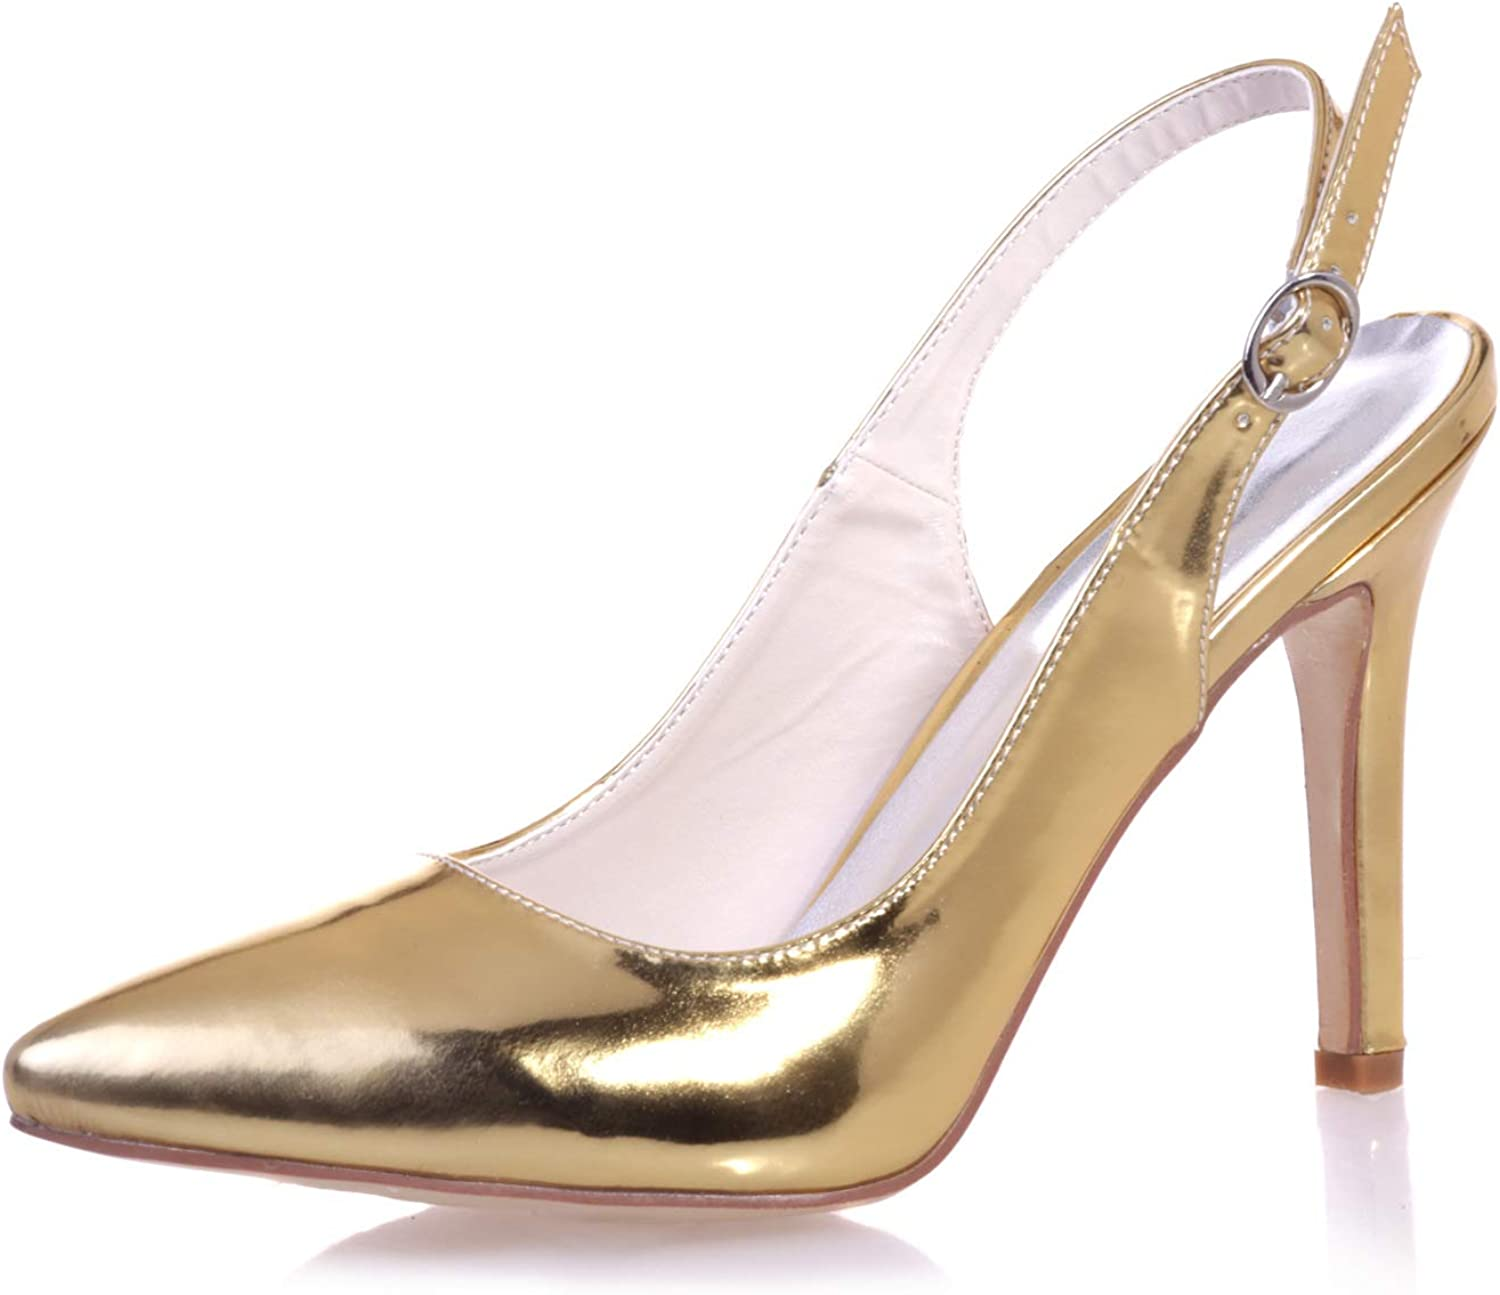 LLBubble Women Pointed Toe High Heels Wedding shoes Stiletto PU Leather Bridal Pumps Ankle Buckle Dress shoes 0608-24